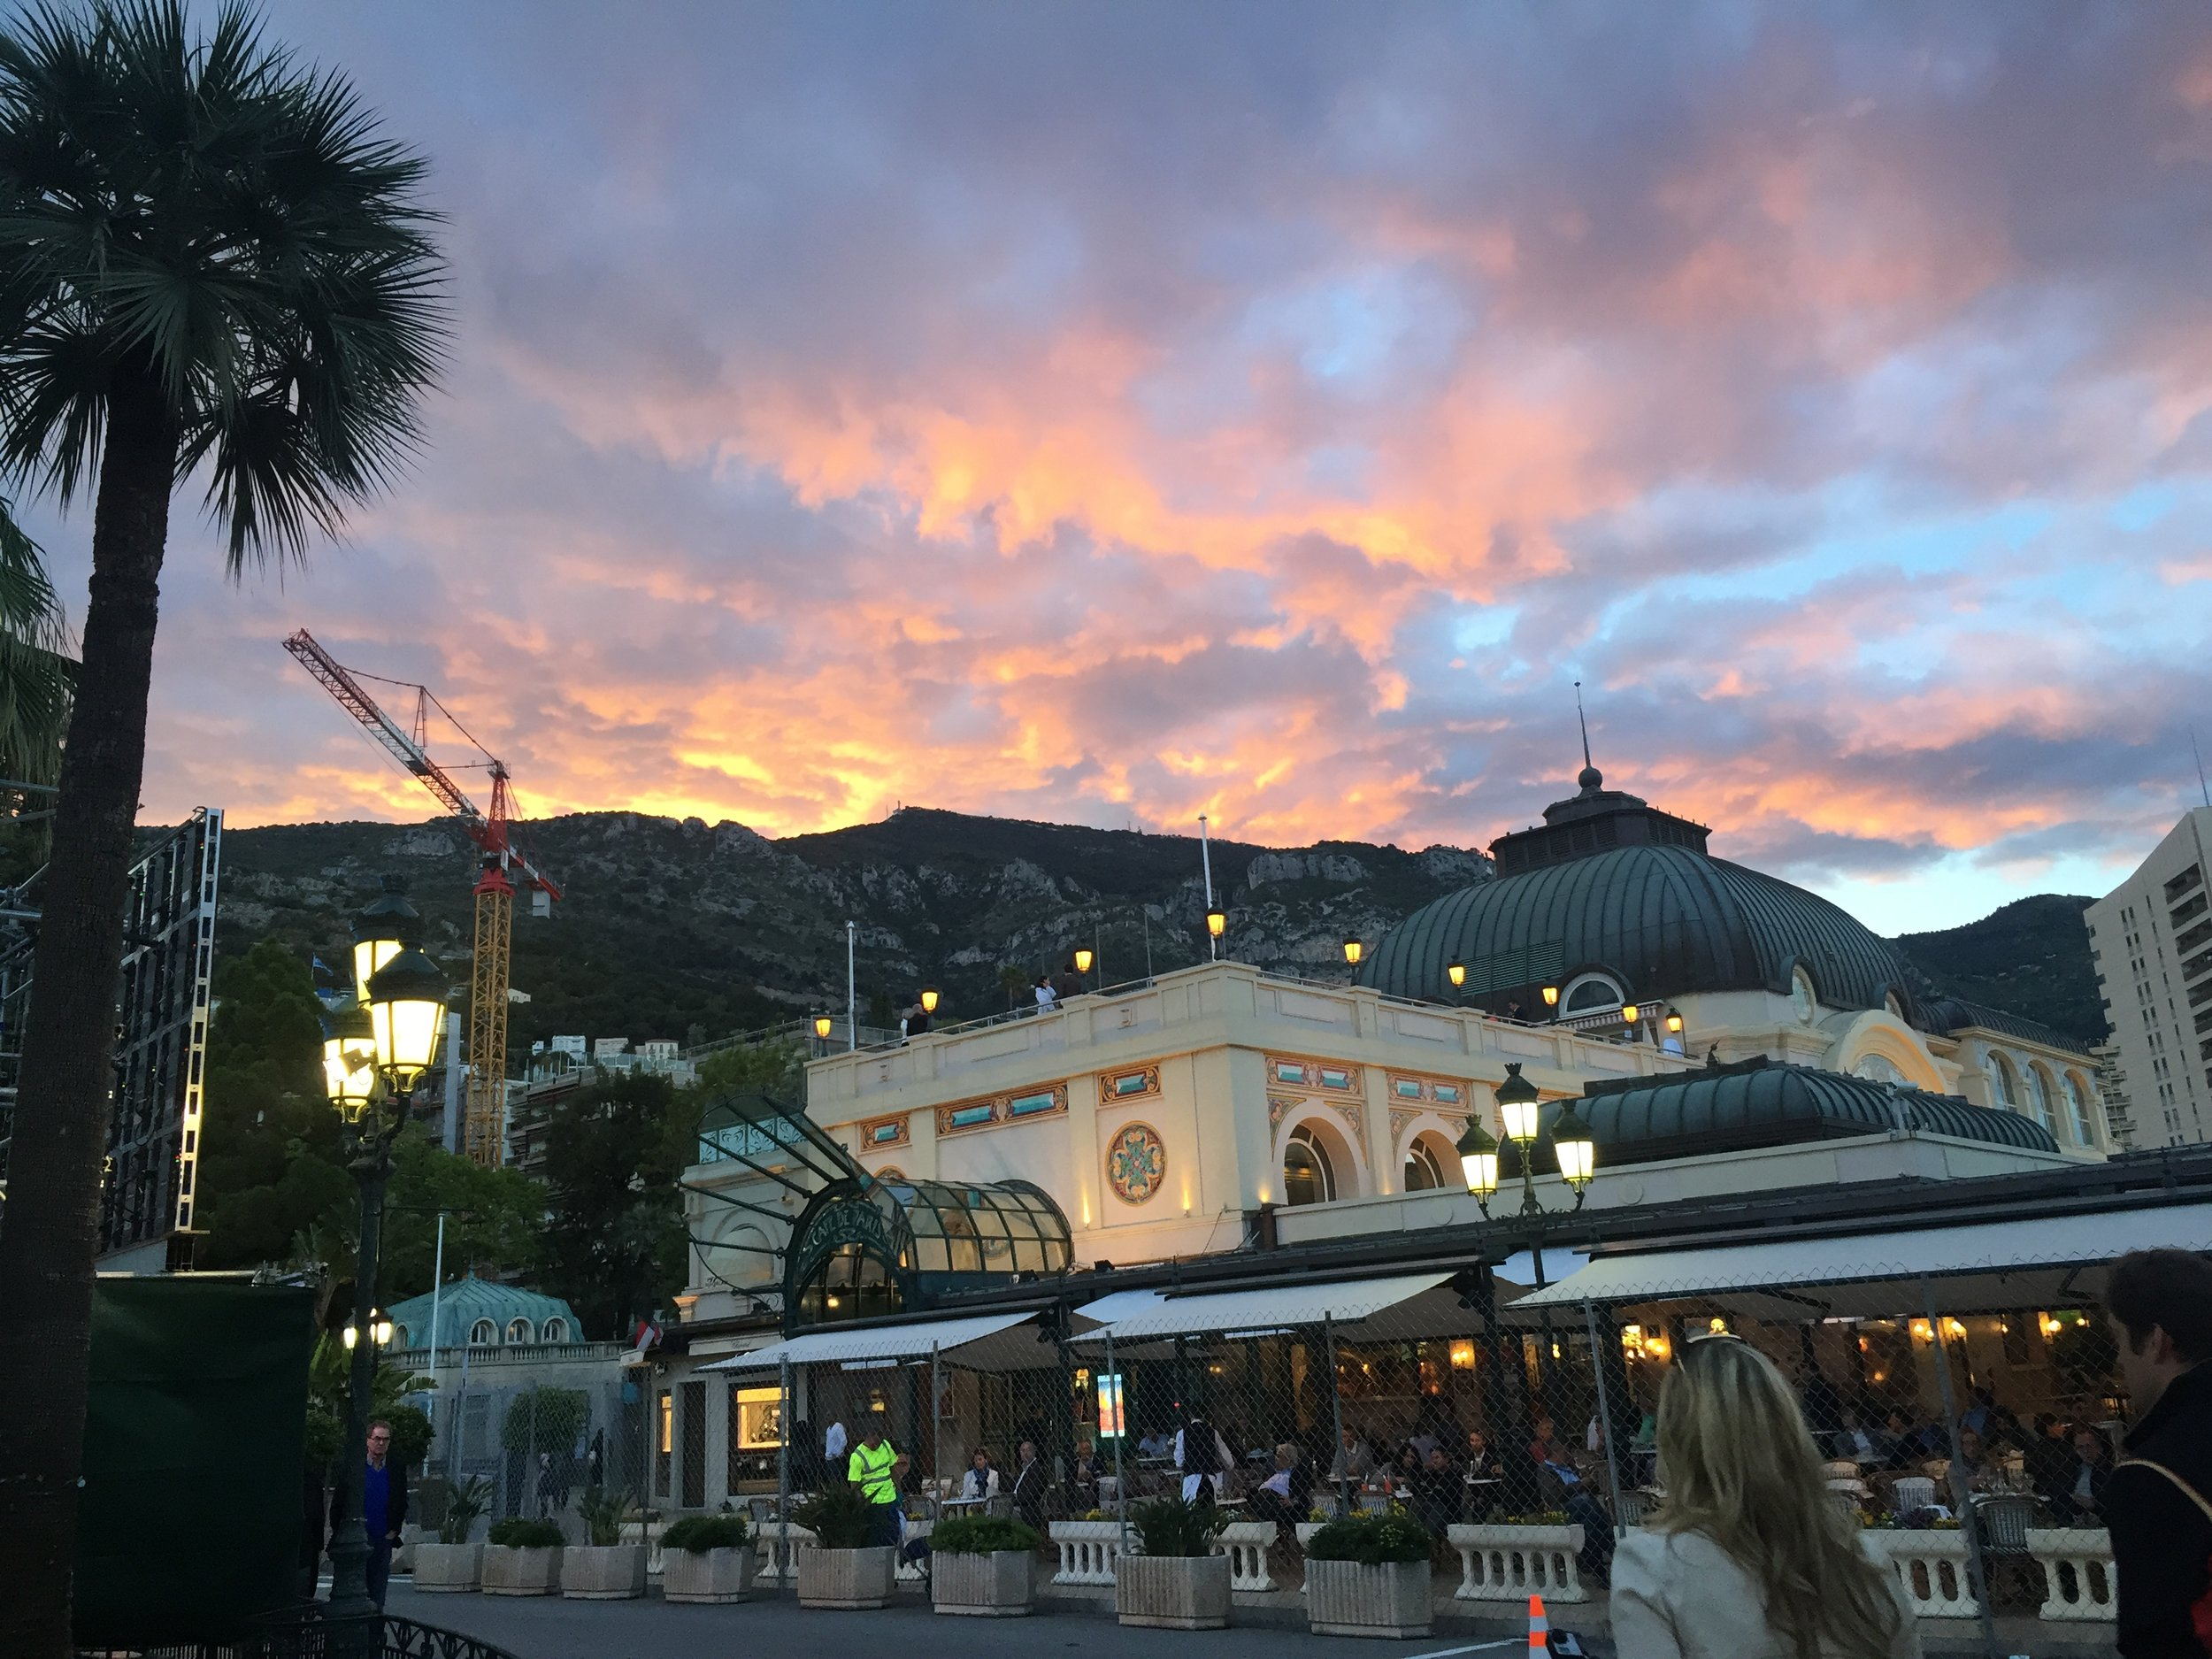 Cafe de Paris at sunset